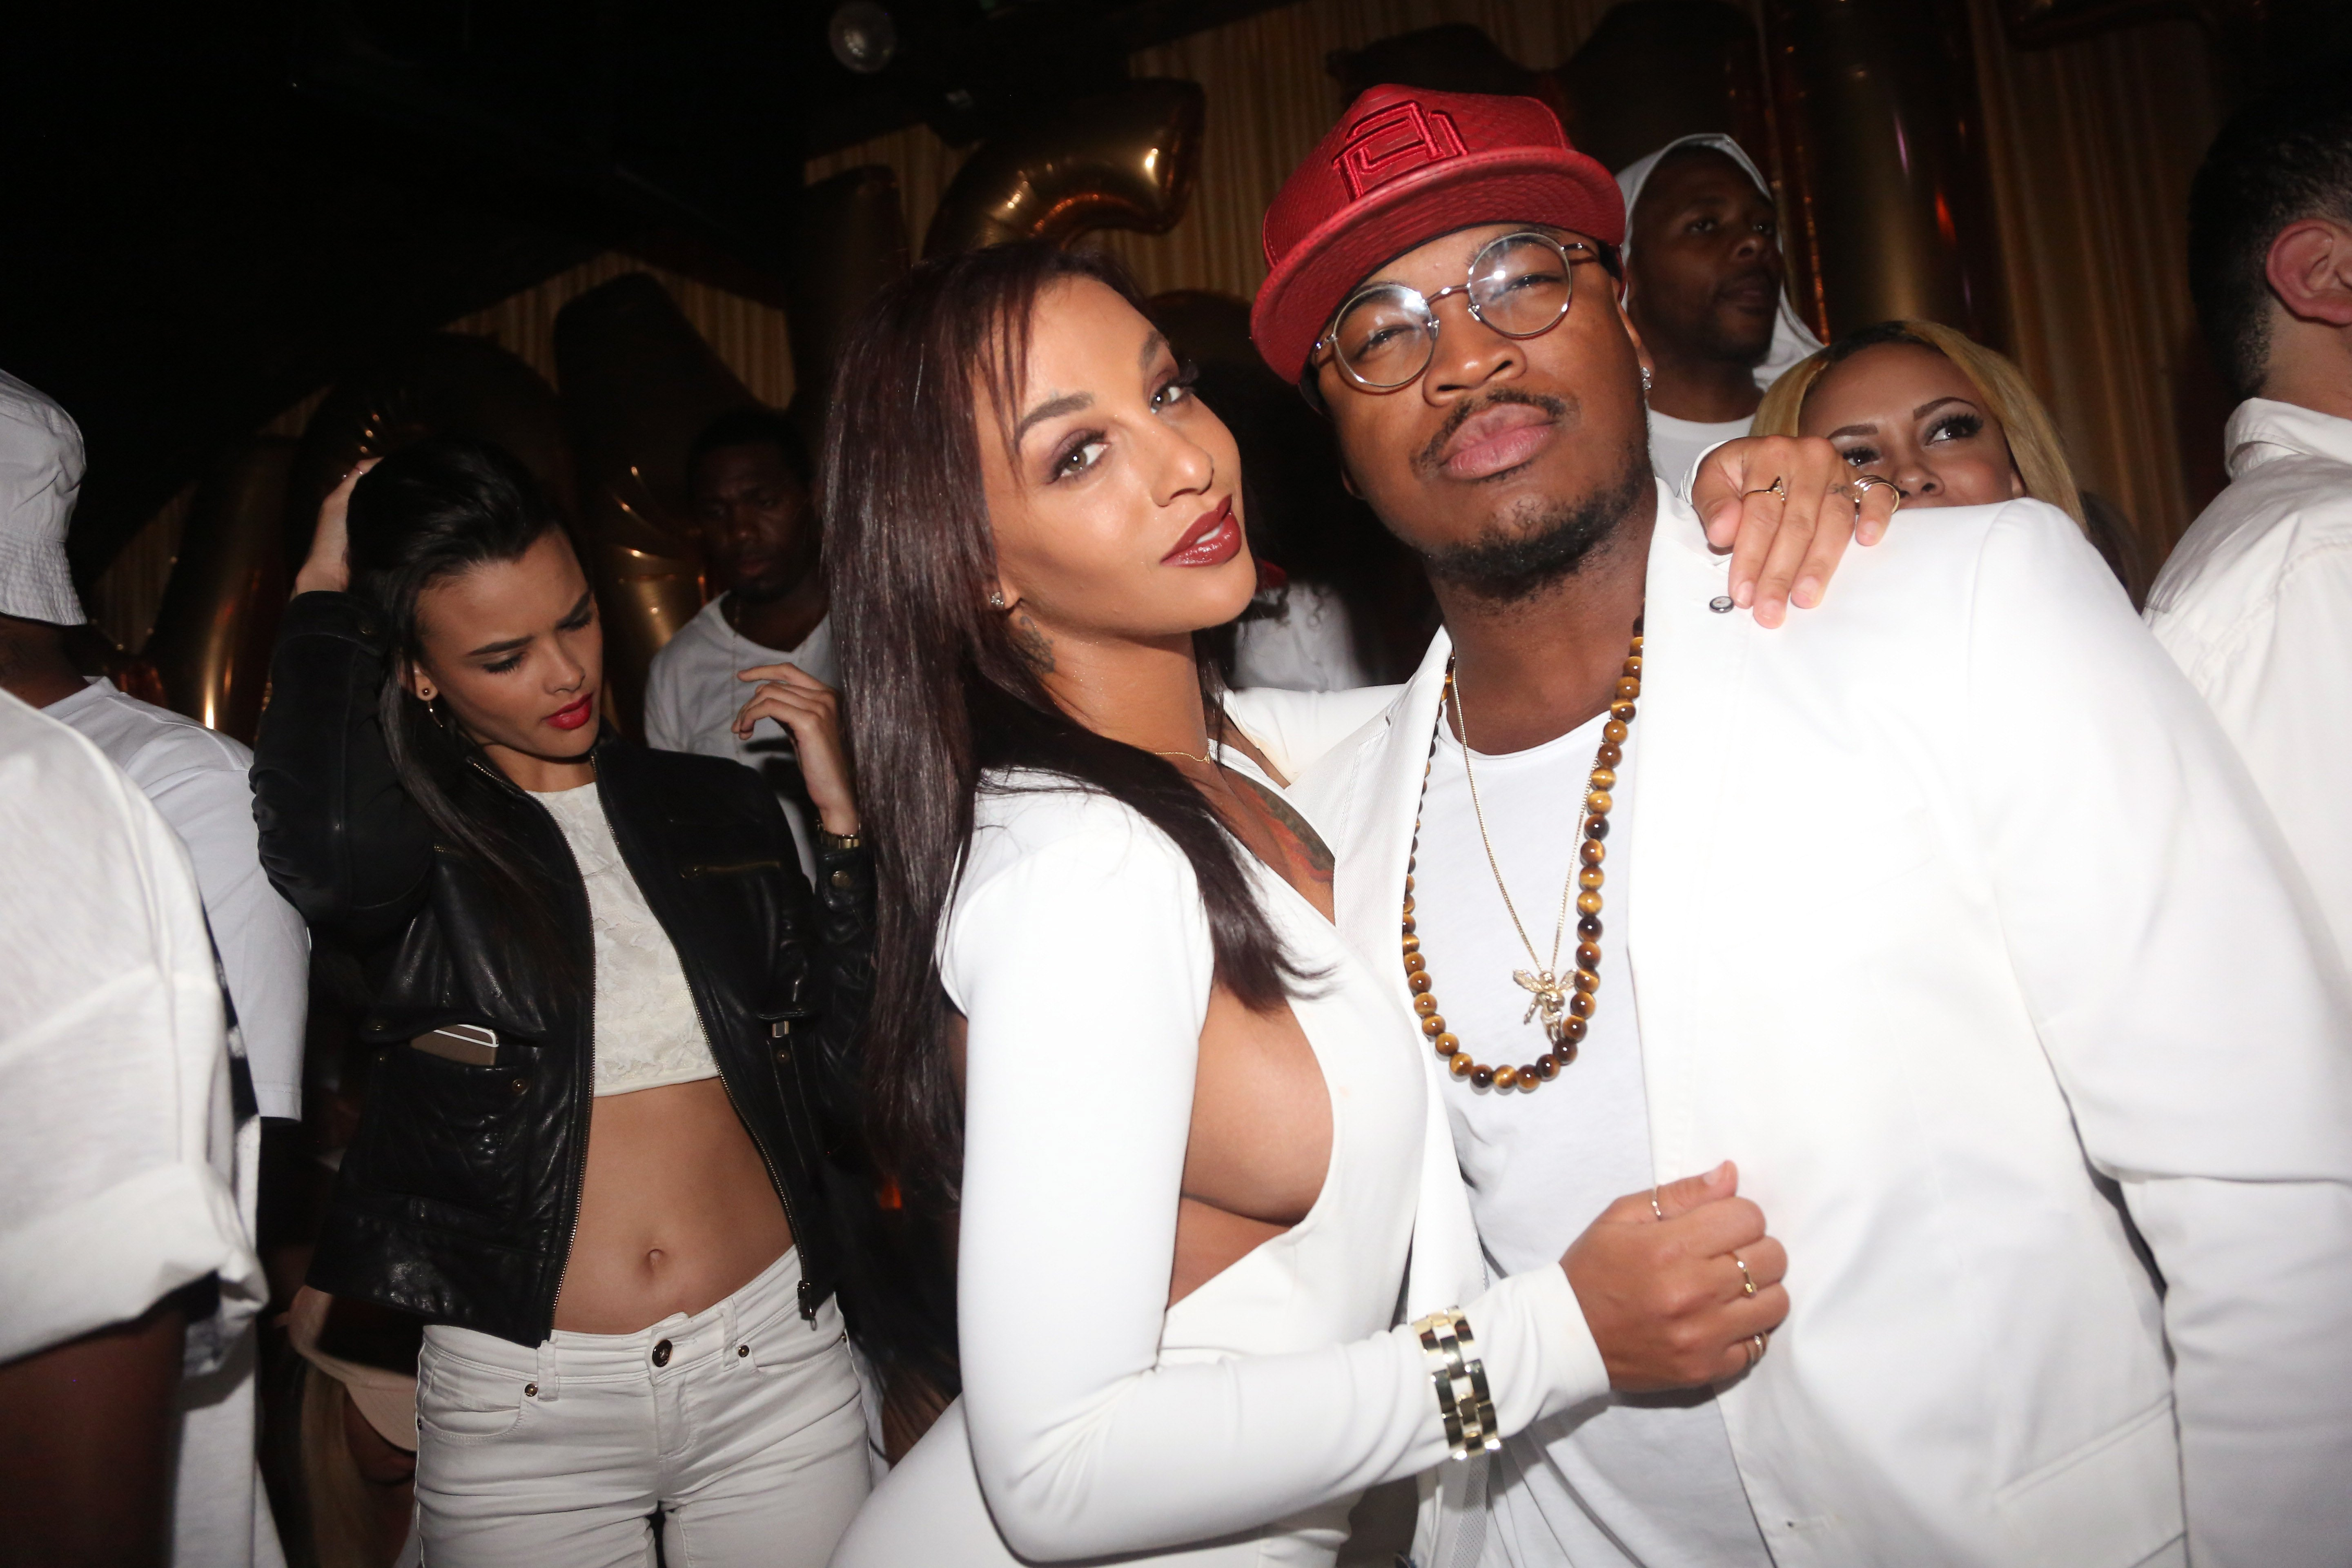 Ne-Yo and Crystal Smith at Von Smith's birthday celebration in June 2015 in New York City.   Photo: Getty Images